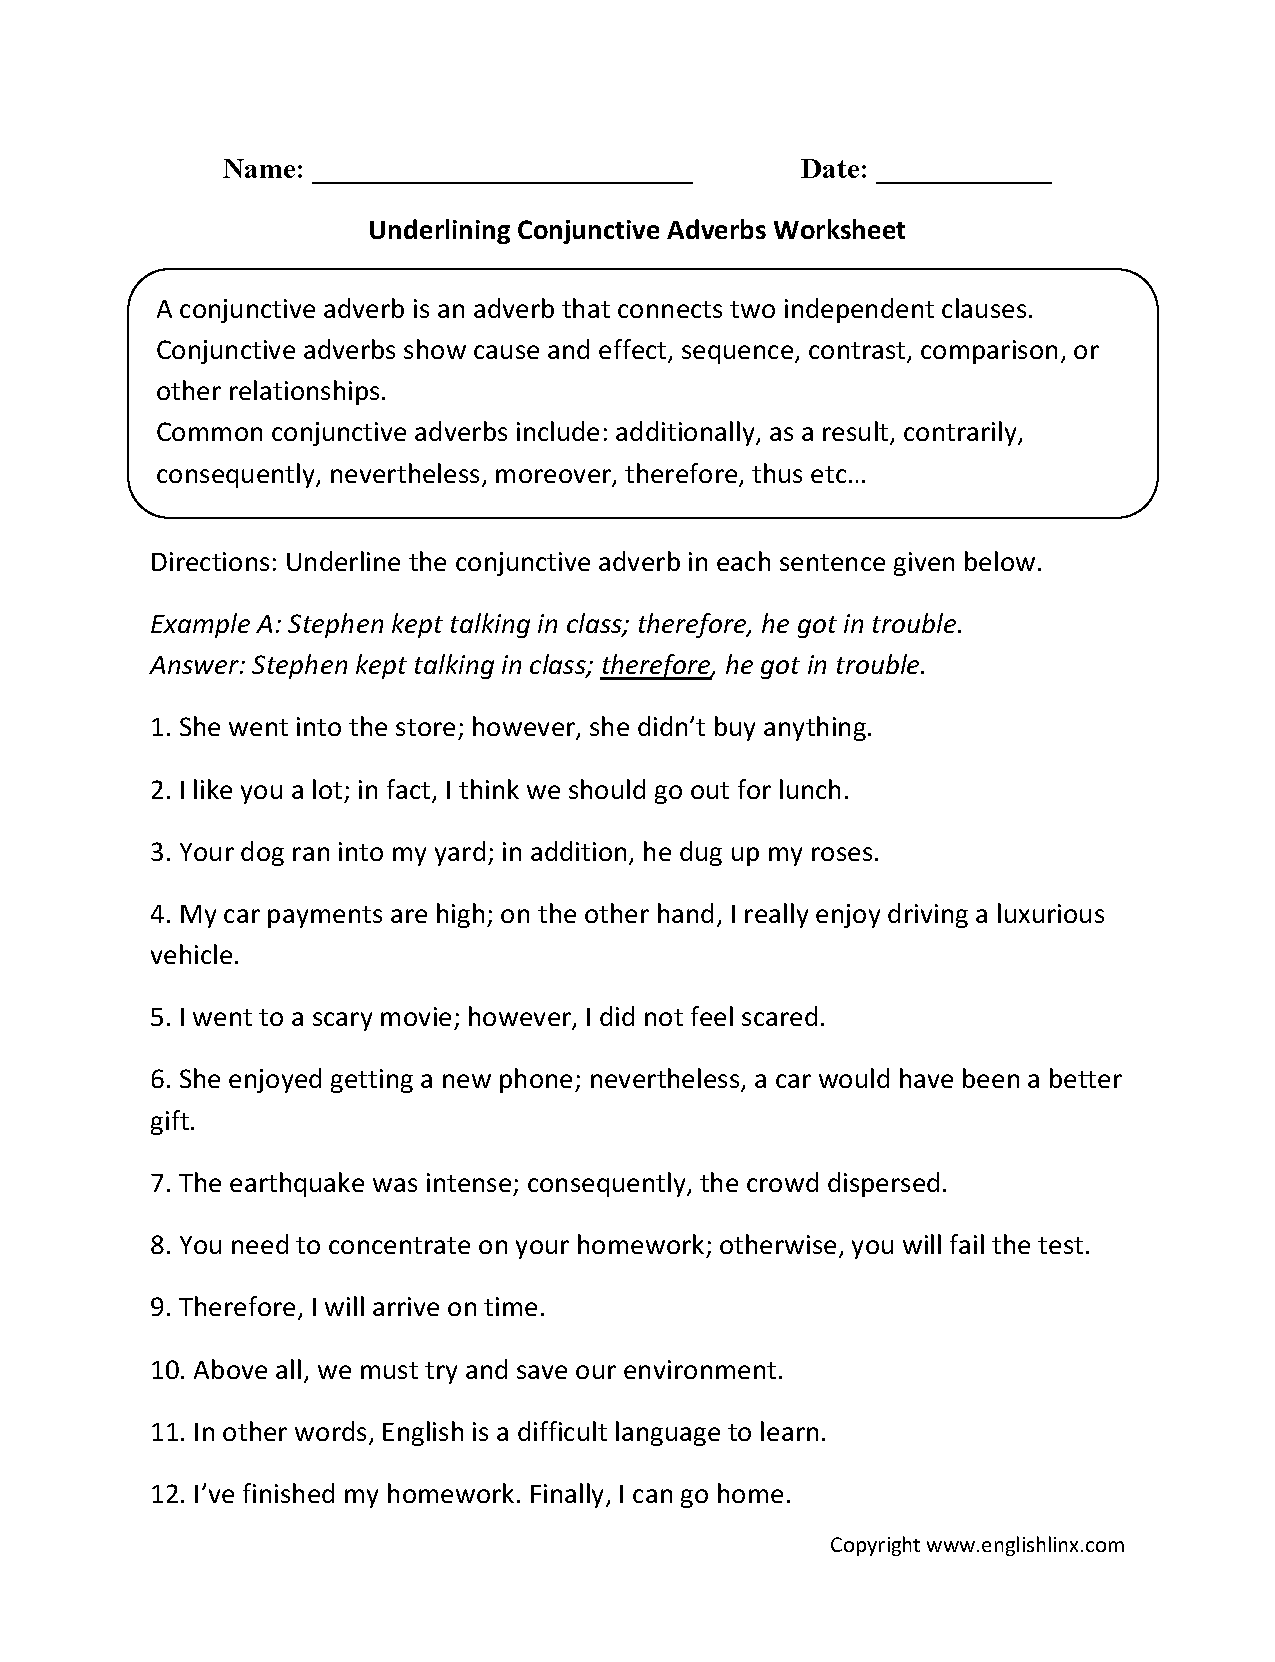 Weirdmailus  Outstanding Englishlinxcom  Conjunctions Worksheets With Fair Worksheet With Extraordinary Marbury V Madison Worksheet Answers Also Sentence Writing Worksheets In Addition Problem Solving Worksheets For Adults And Taxonomy Worksheet Answers As Well As Lab Equipment Worksheet Answers Additionally Free Printable Worksheets For Preschoolers From Englishlinxcom With Weirdmailus  Fair Englishlinxcom  Conjunctions Worksheets With Extraordinary Worksheet And Outstanding Marbury V Madison Worksheet Answers Also Sentence Writing Worksheets In Addition Problem Solving Worksheets For Adults From Englishlinxcom